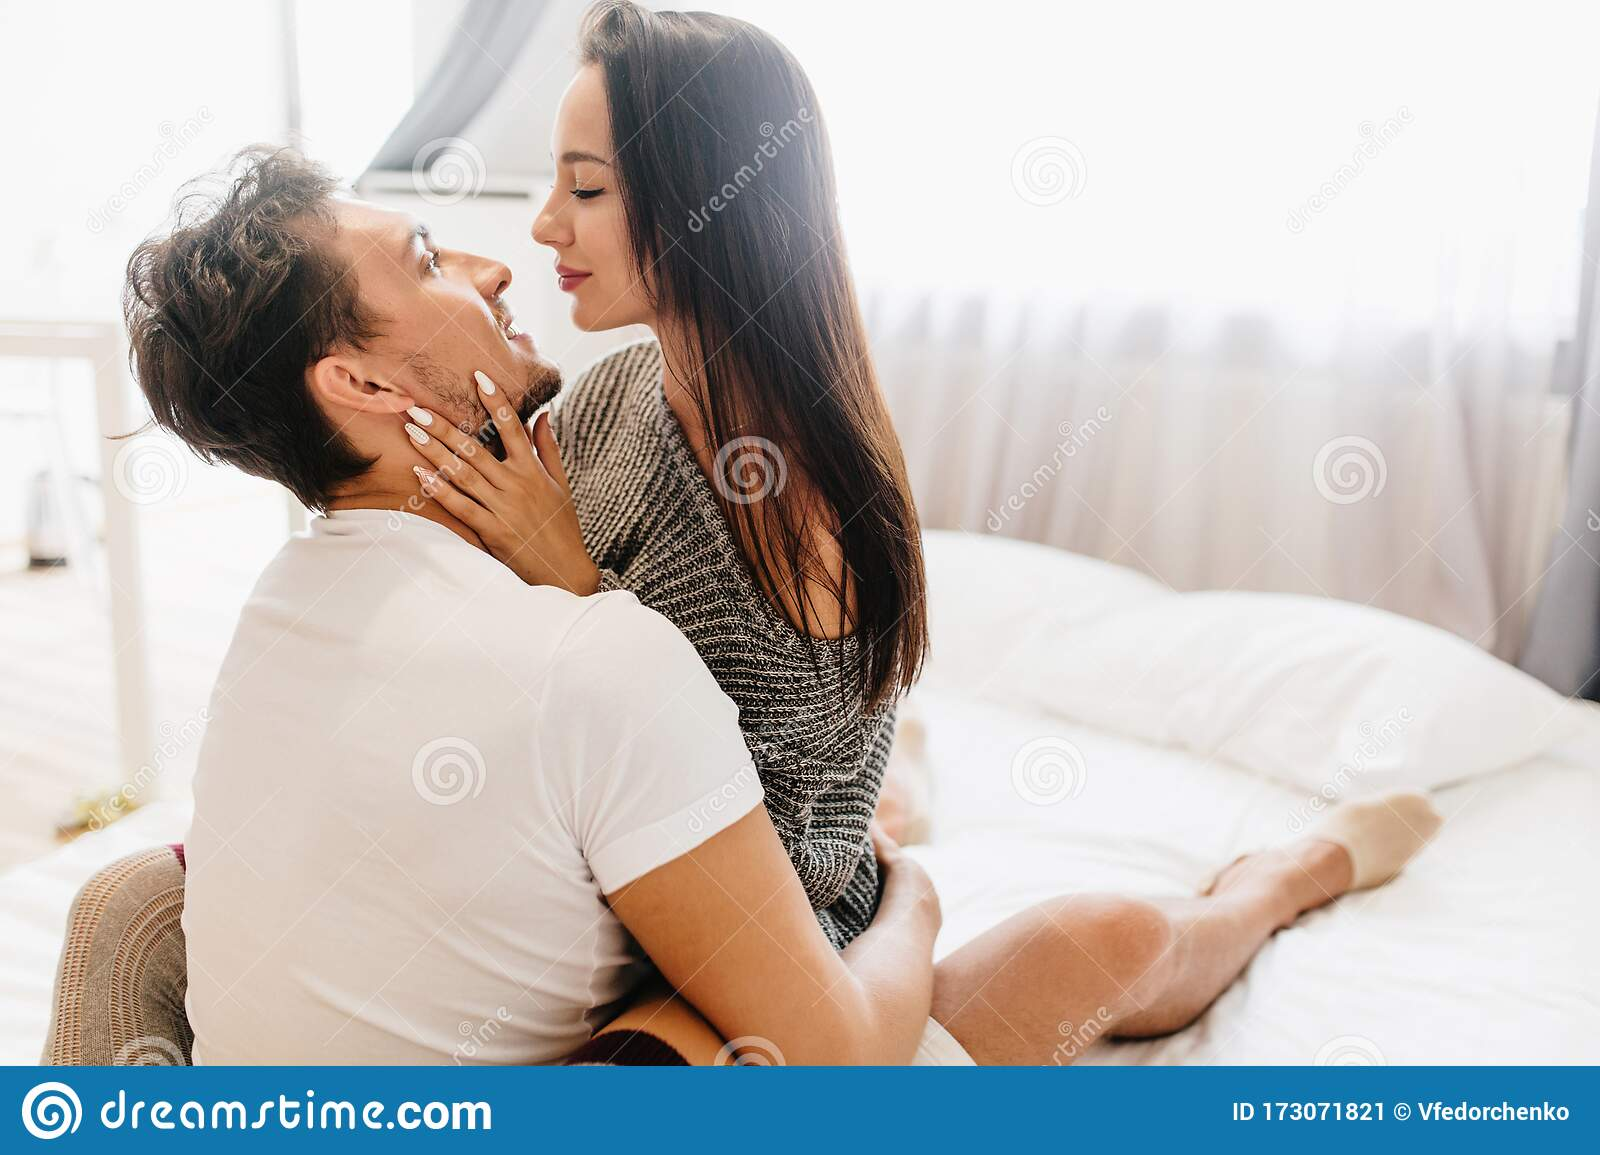 Enchanting Girl With White Manicure Chilling In Bed With Husband And Gently Touching Him Indoor Portrait Of Gorgeous Stock Image Image Of Comfortable Boyfriend 173071821